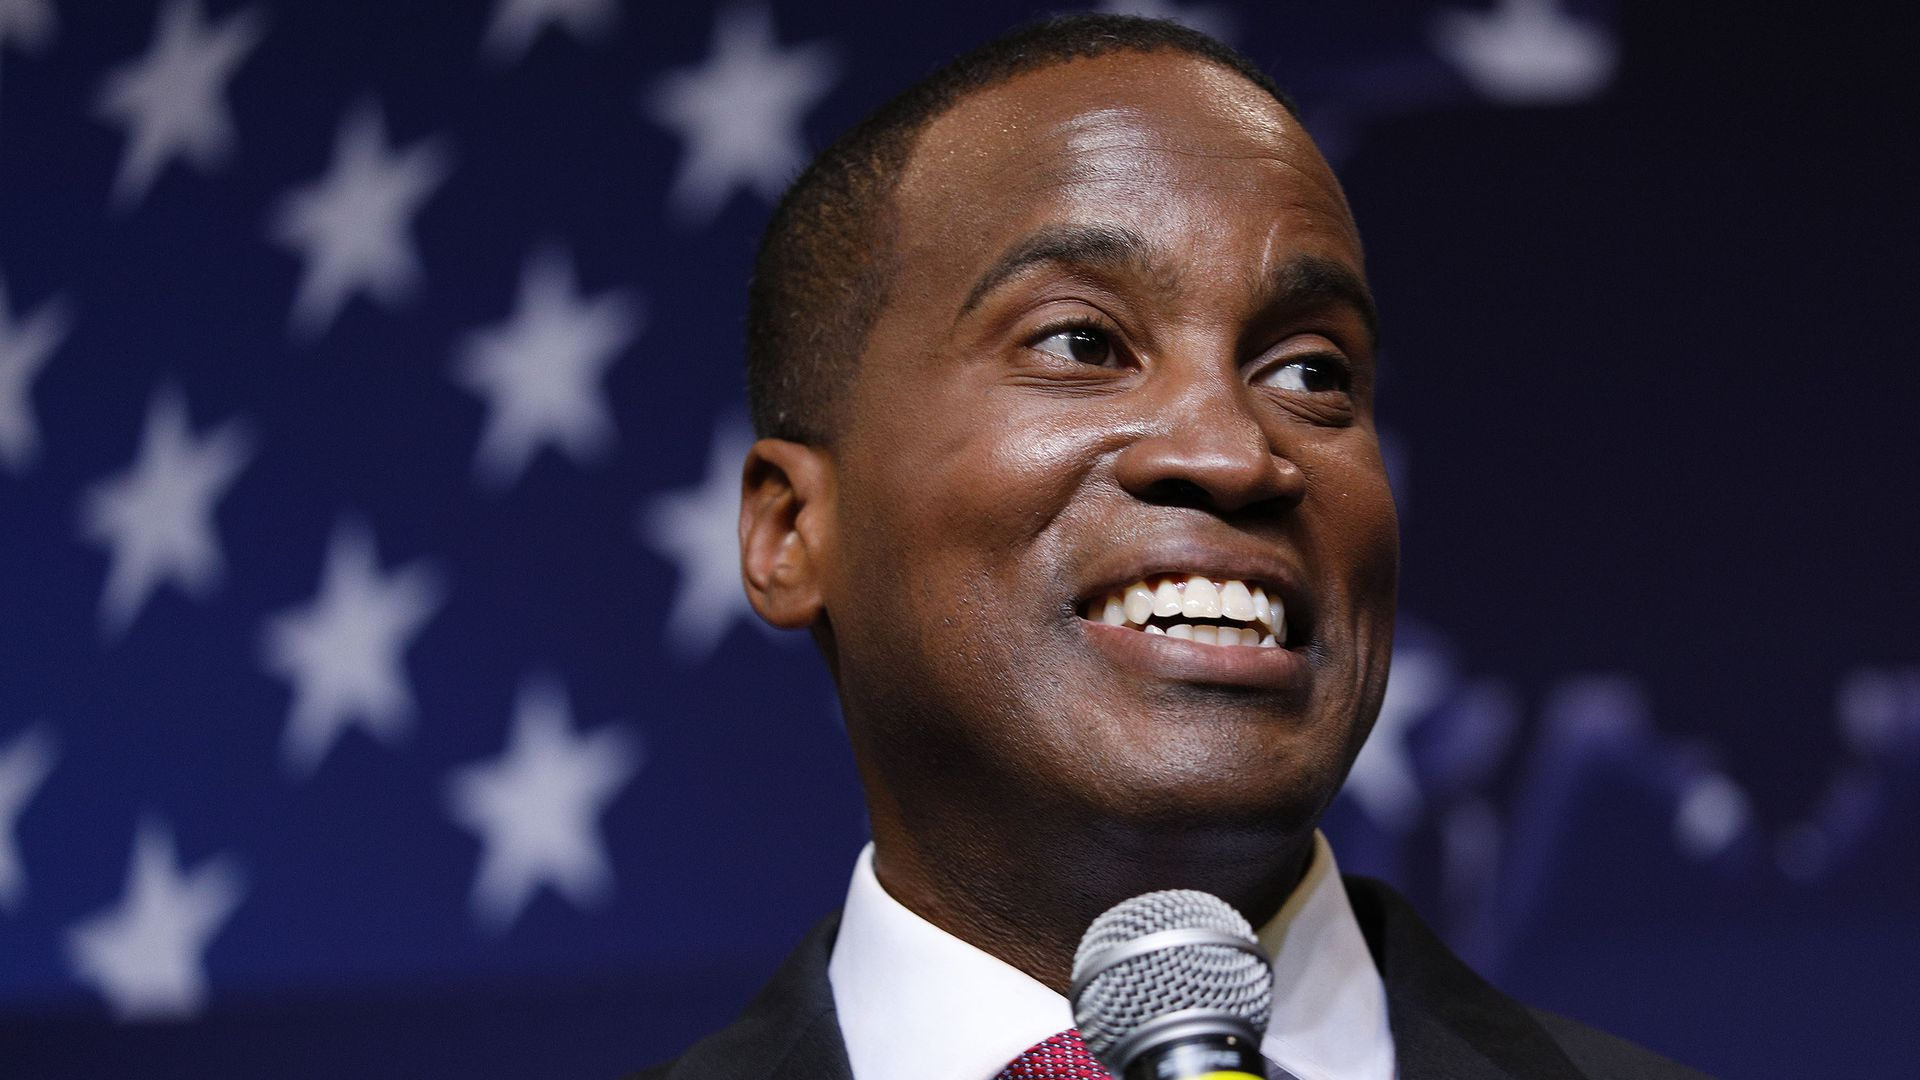 John James holding a microphone with an American flag in the background.